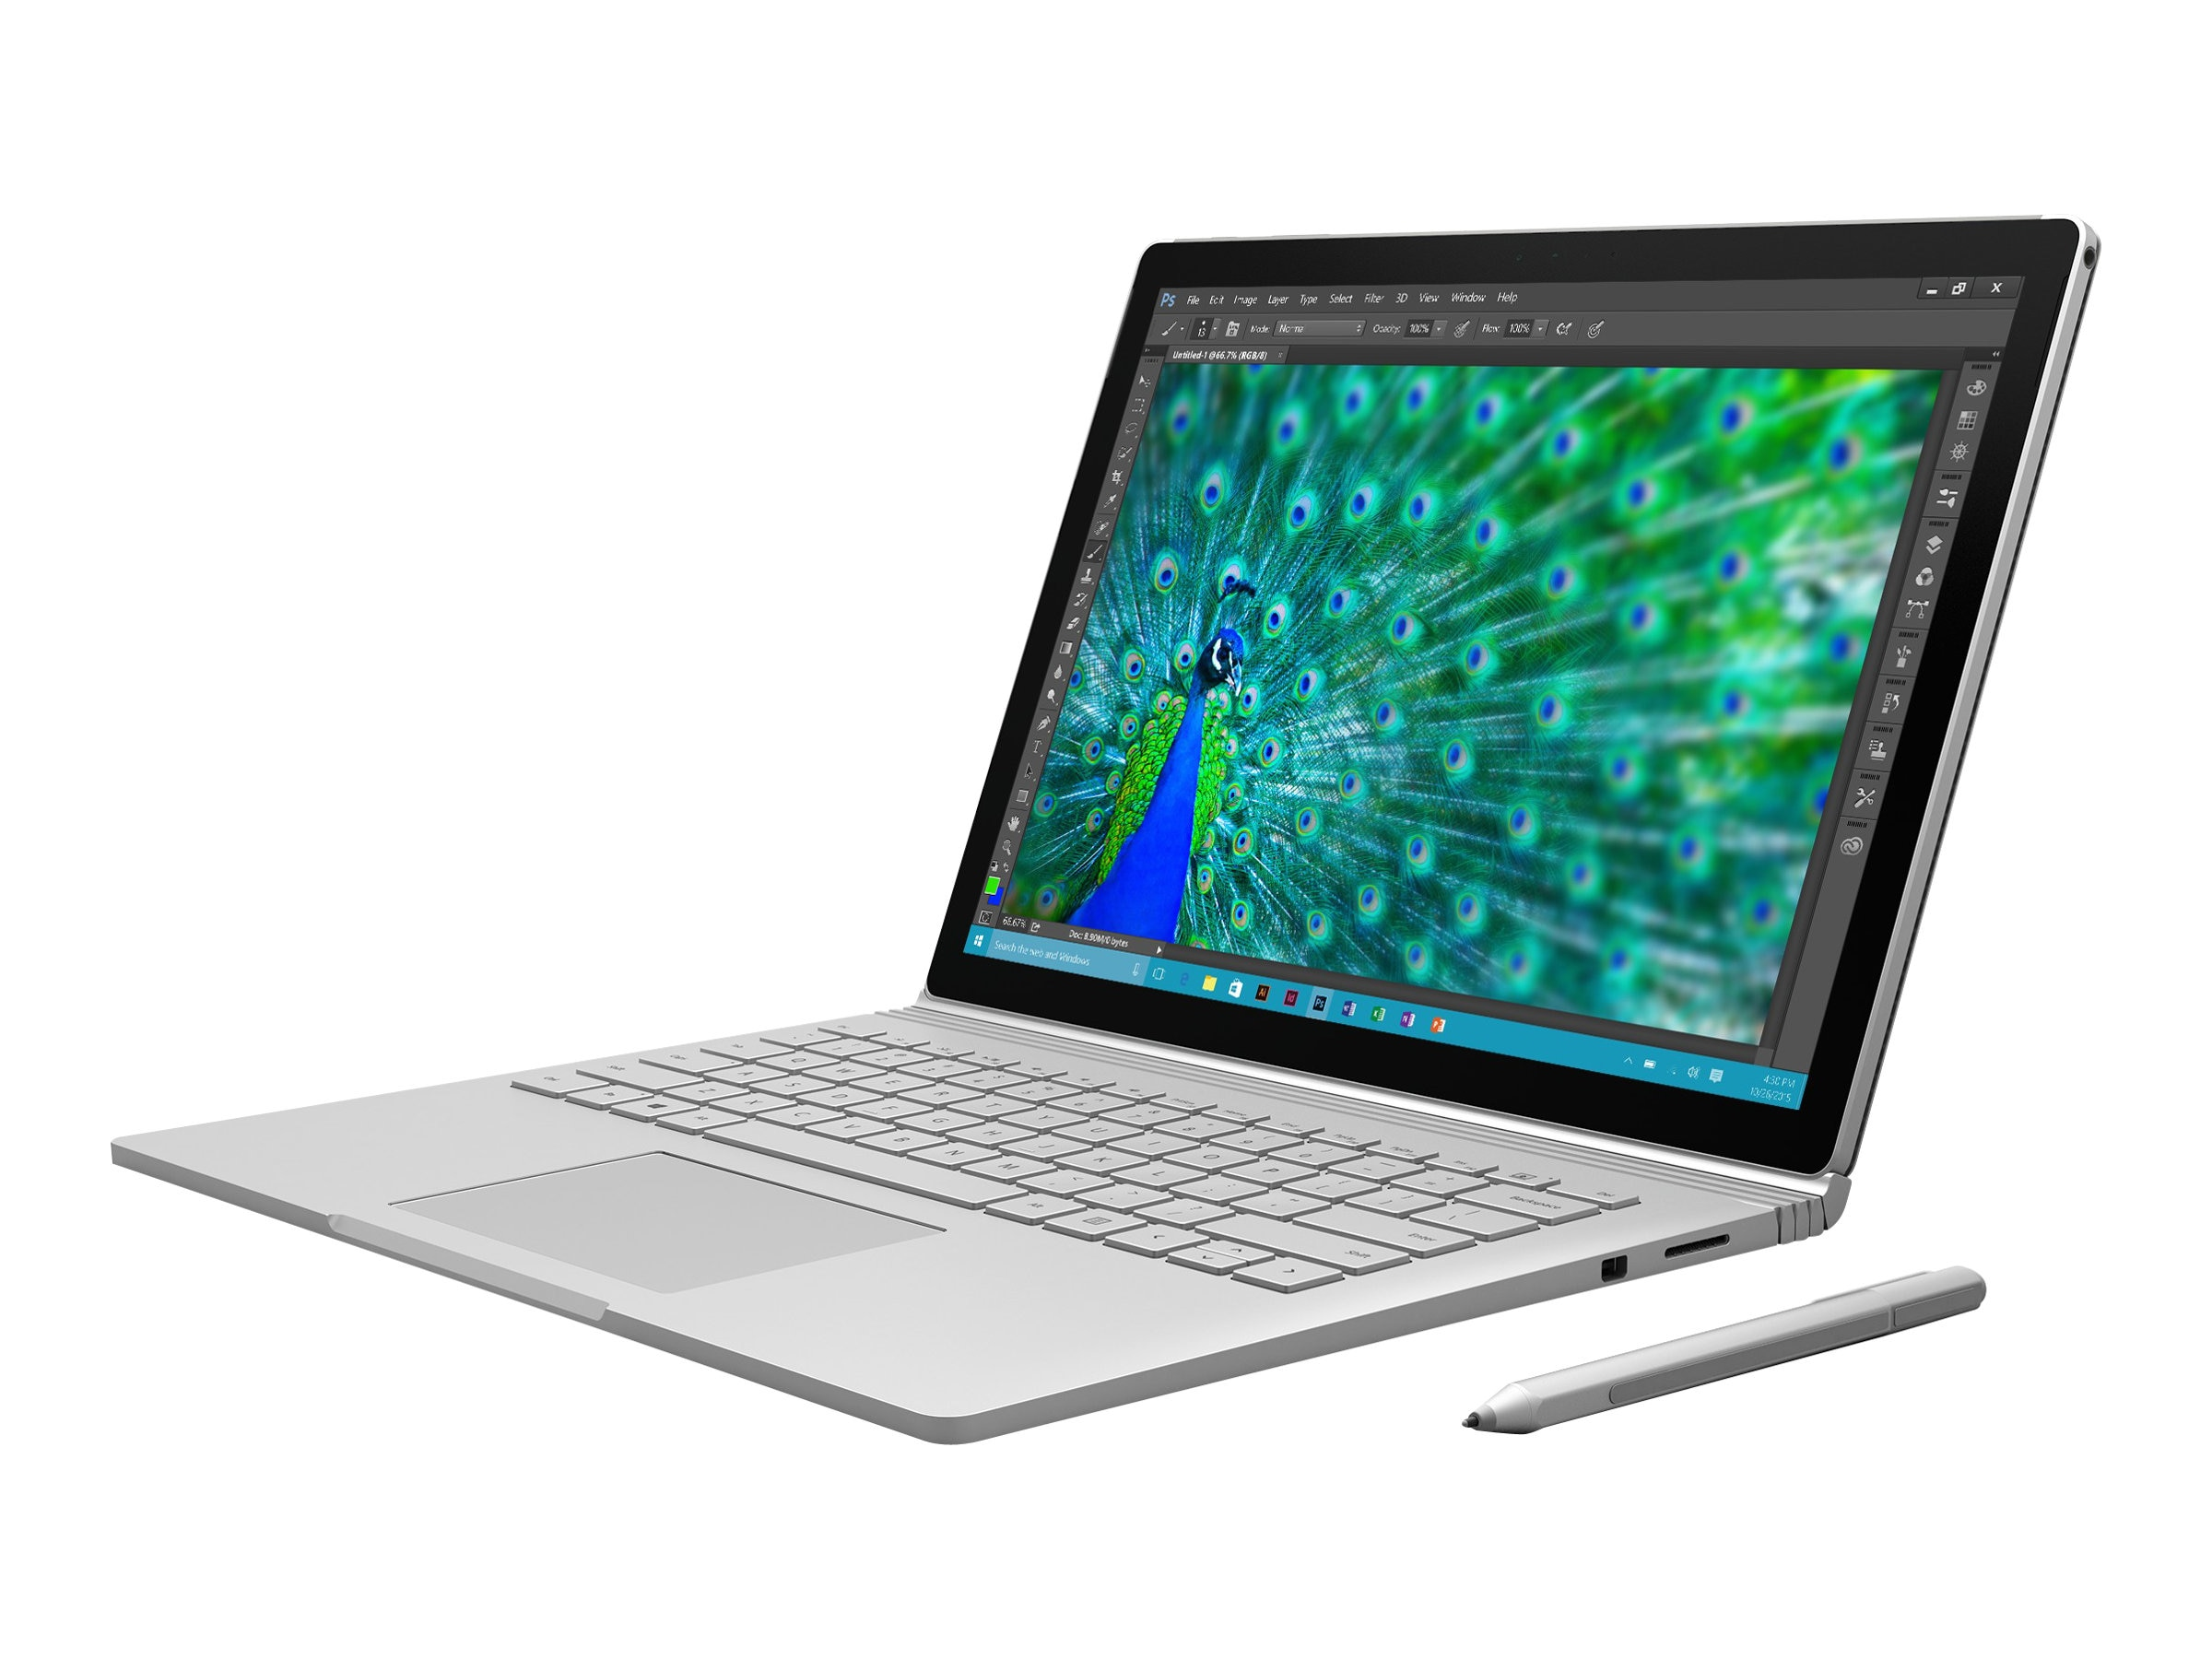 Microsoft Surface Book Core i5 dGPU 8GB 256GB w 3-Yr Complete for Business with ADP